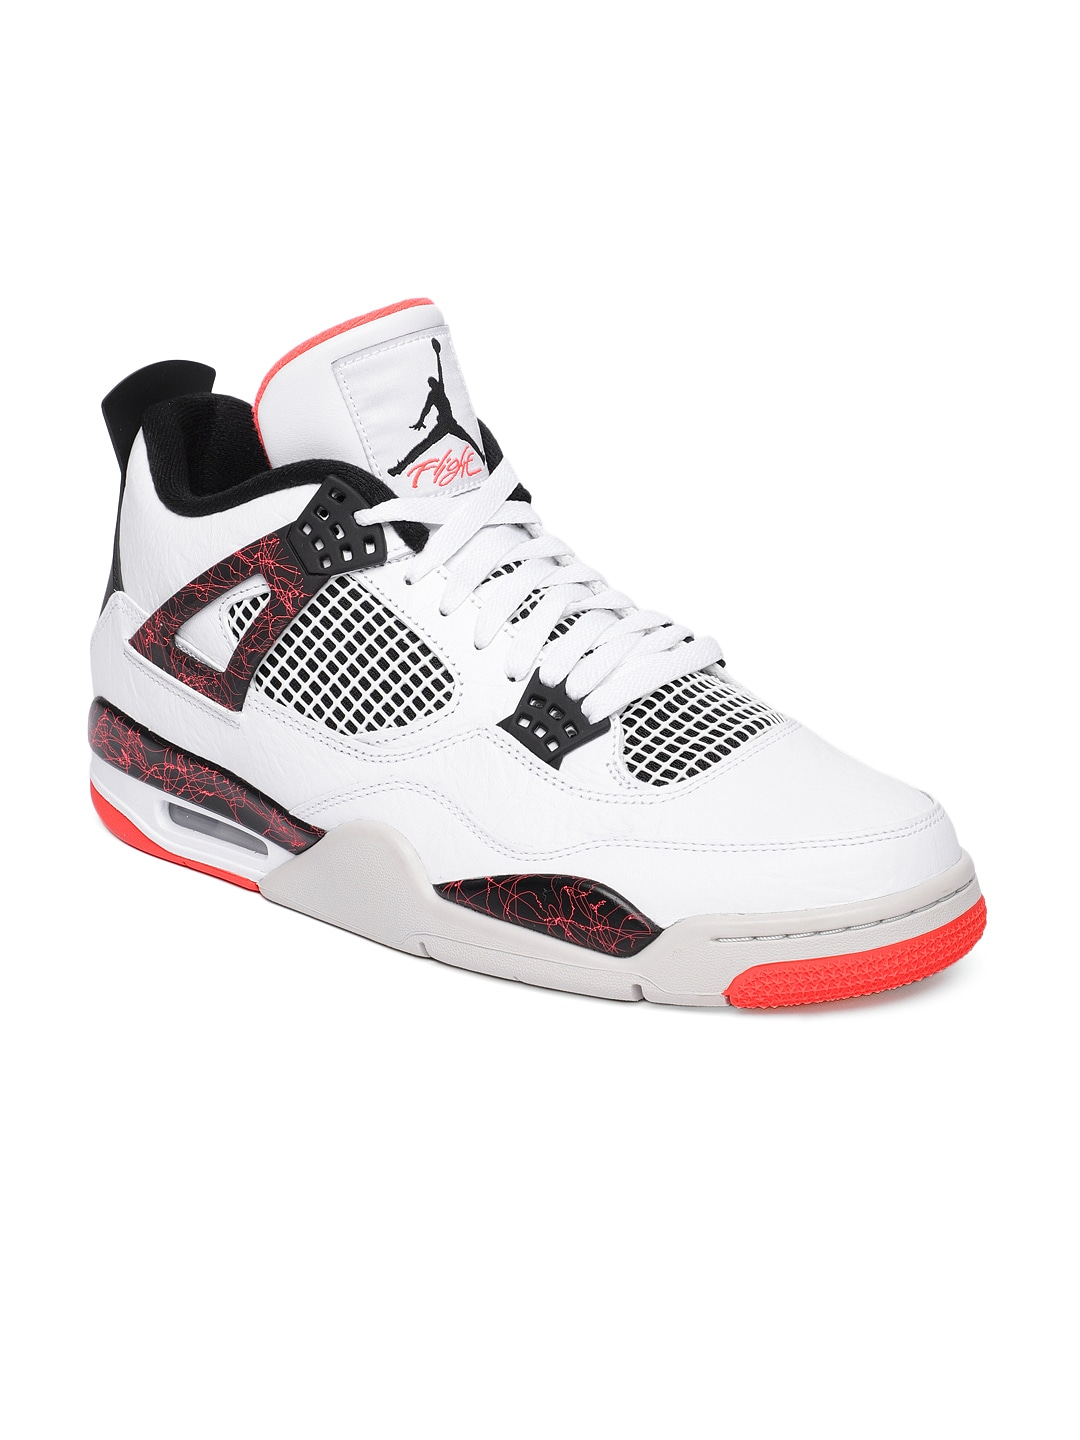 61c56c9b3fd8 Jordan Shoes - Buy Jordan Shoes For Men Online in India